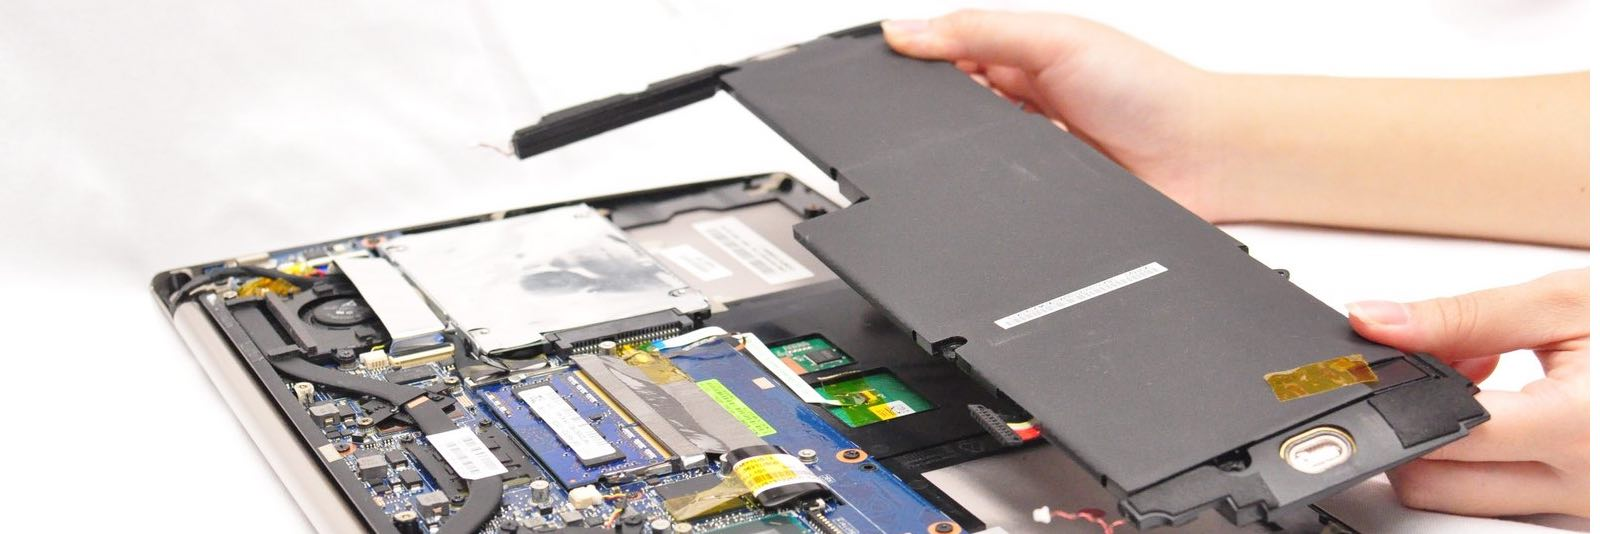 How to Care for Your Laptop's Battery (So It Lasts Longer)